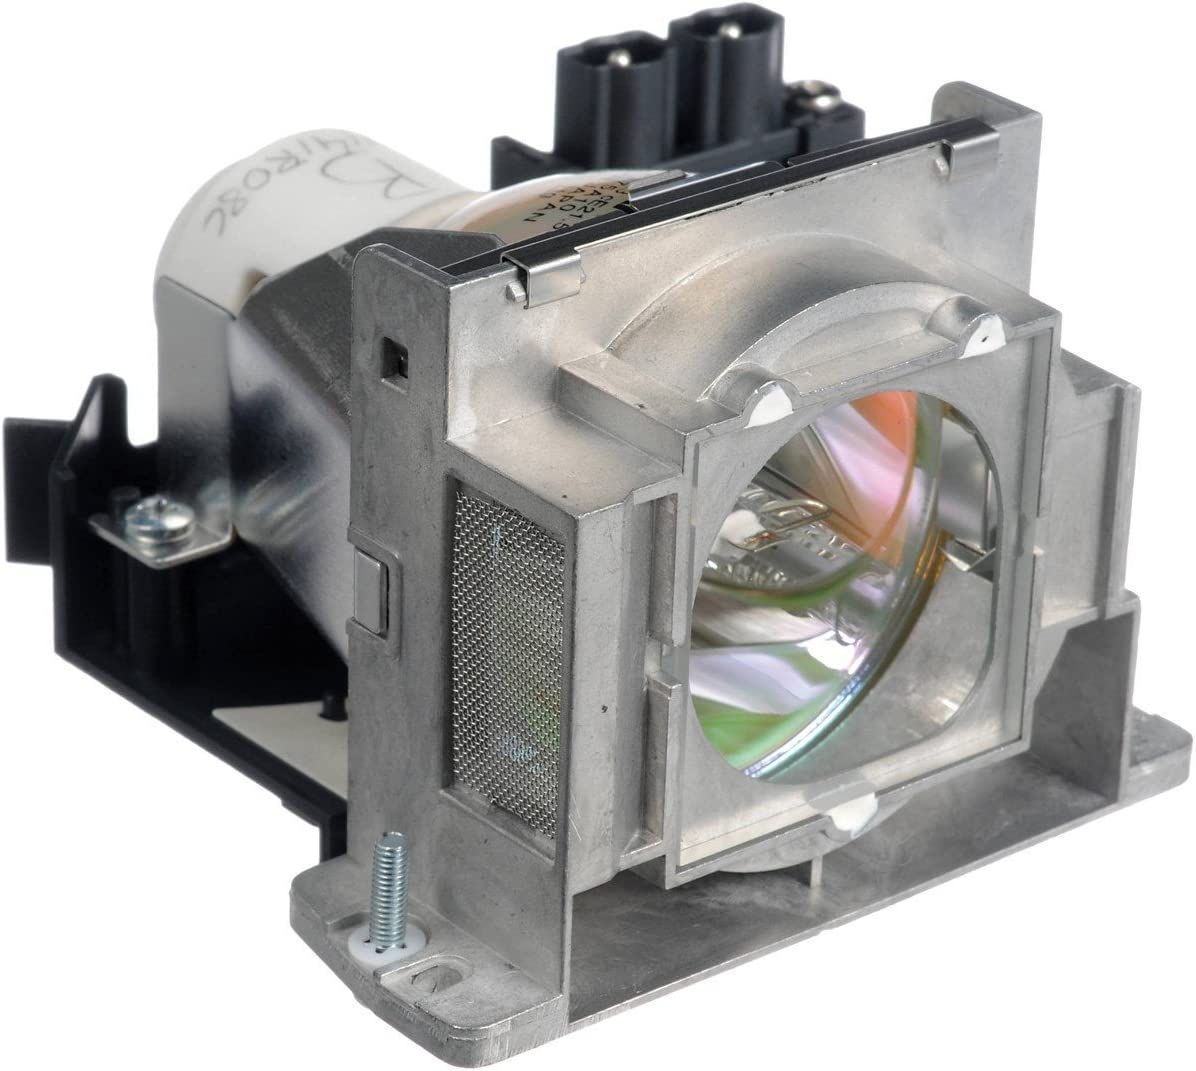 VLT-XD400LP Mitsubishi Projector Lamp Replacement Projector Lamp Assembly with Genuine Original Osram P-VIP Bulb Inside.